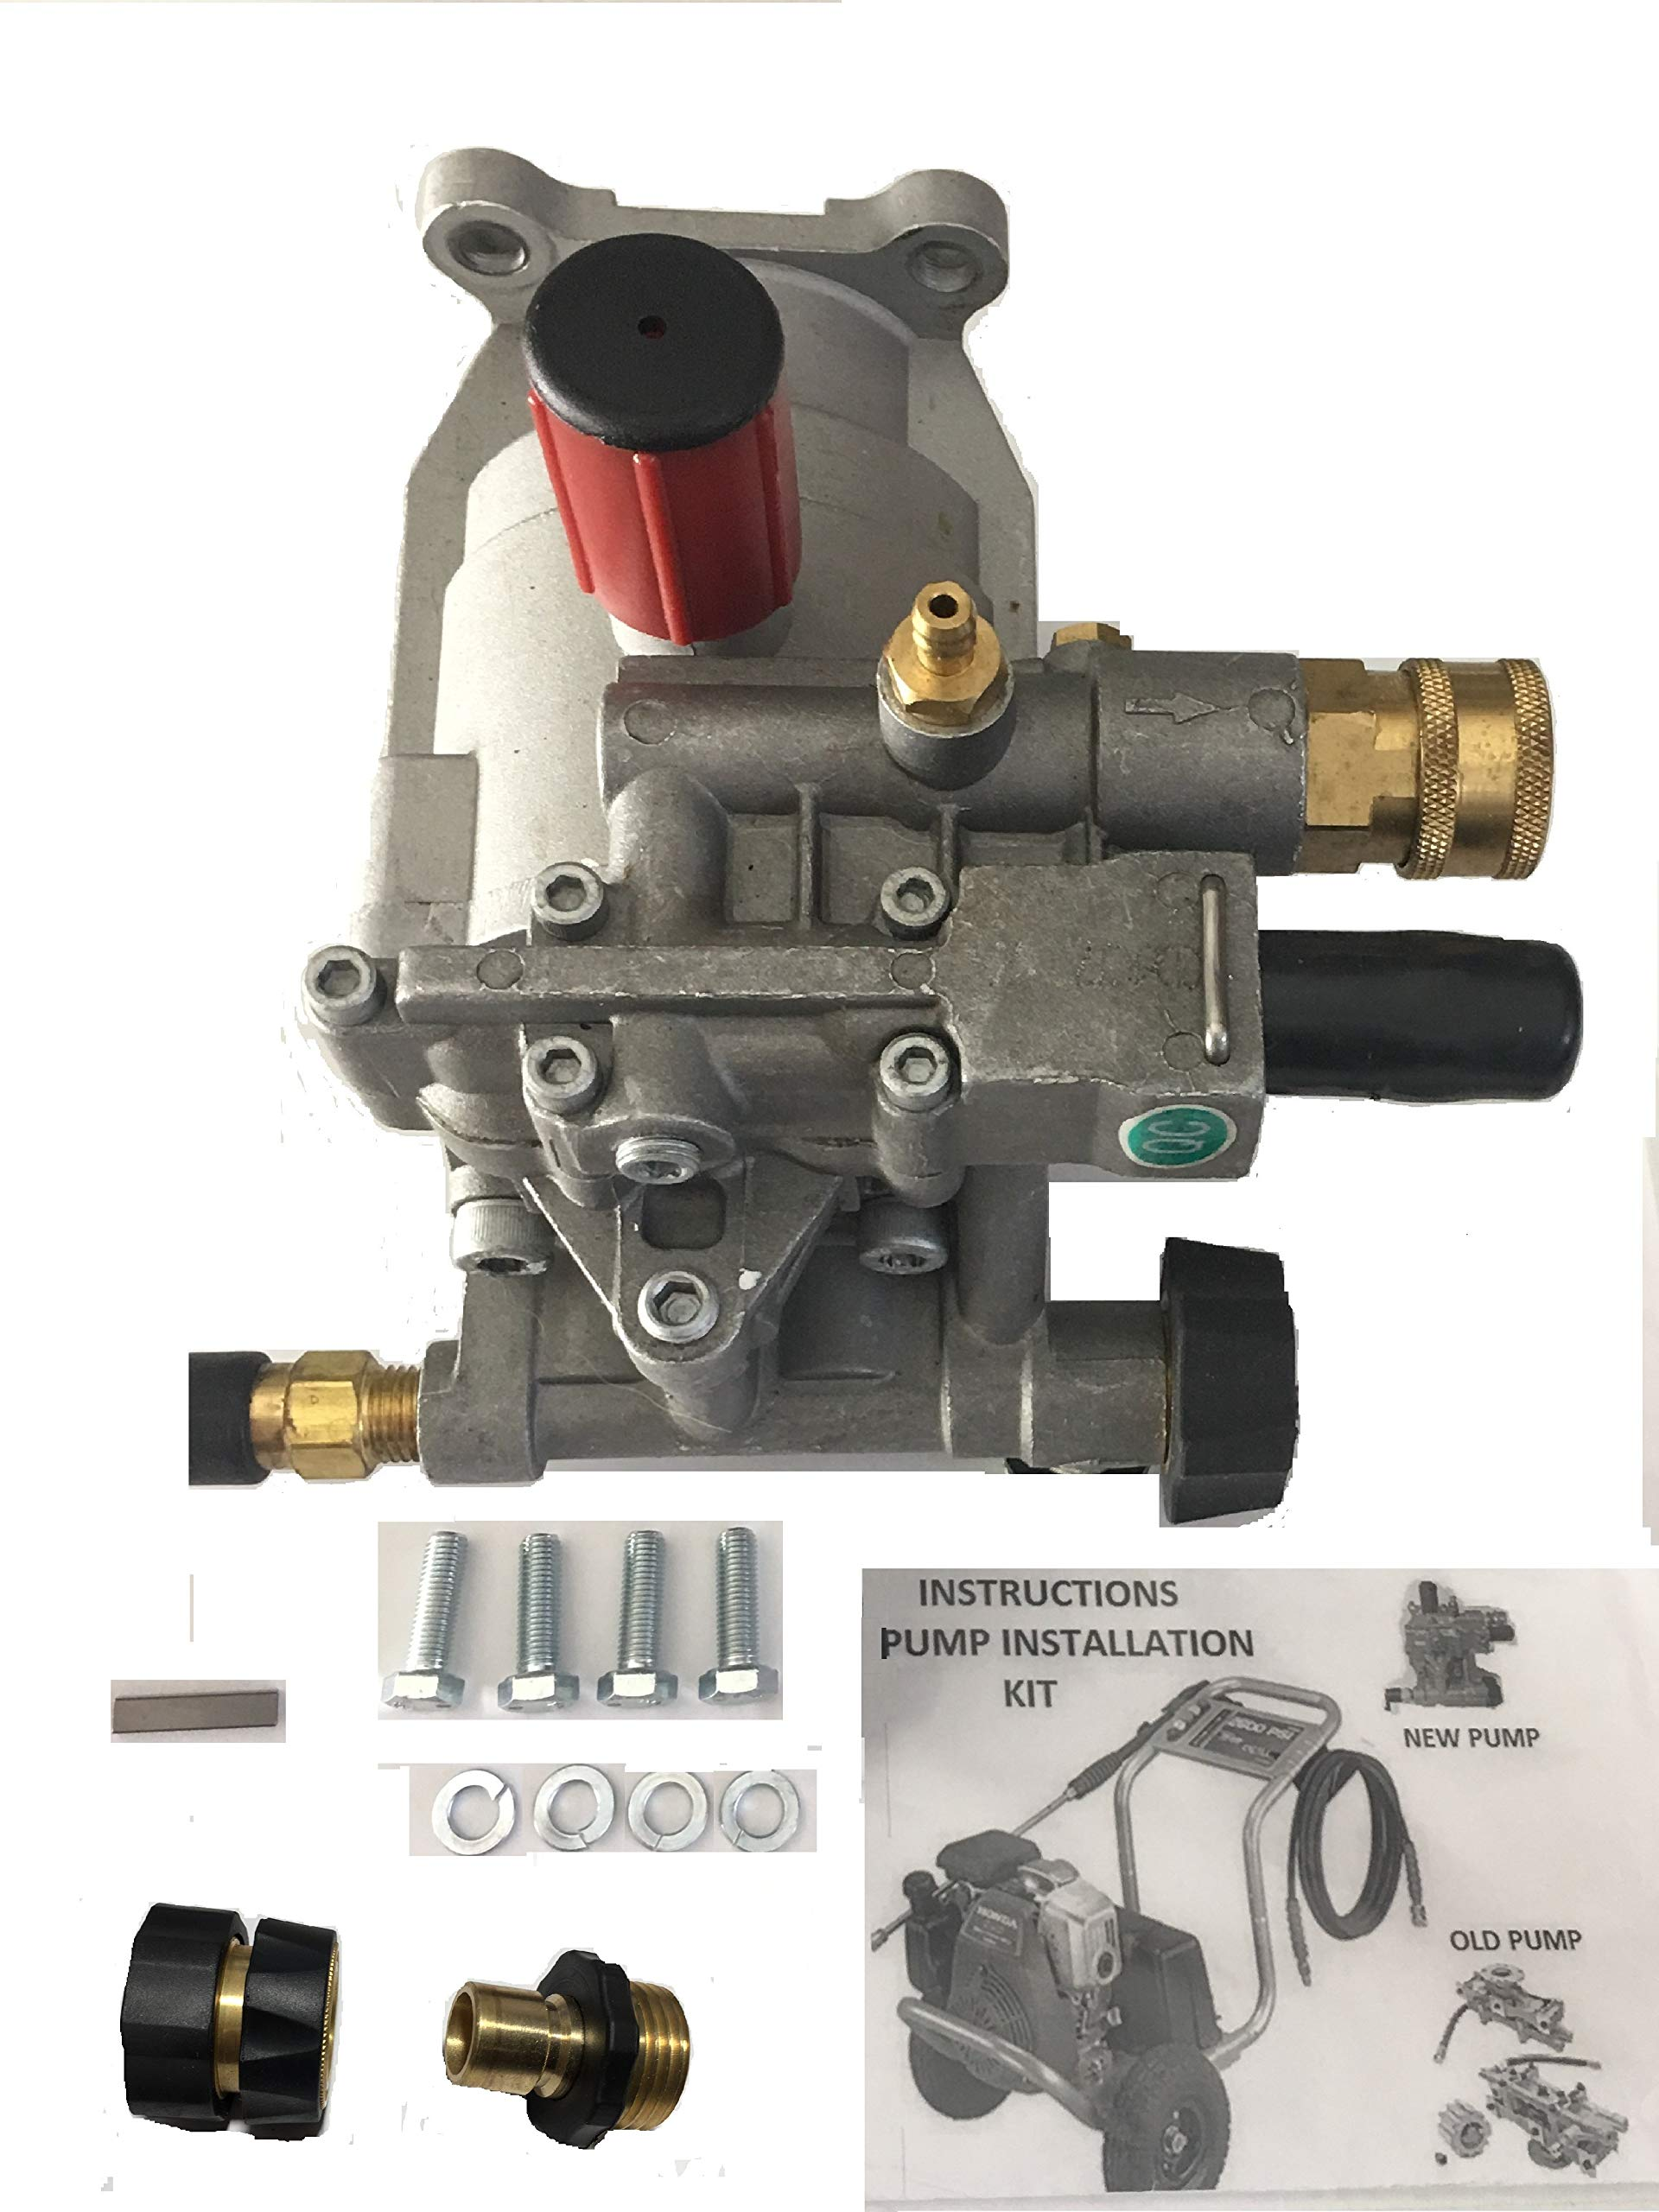 New Pumps-n-More Excell Replacement Pump XR2500 XR2600 XC2600 EXHA2425 XR2625 Pressure Washer Pump Kit with Garden Hose QC and Pressure QC Hose Adapters by ExceII